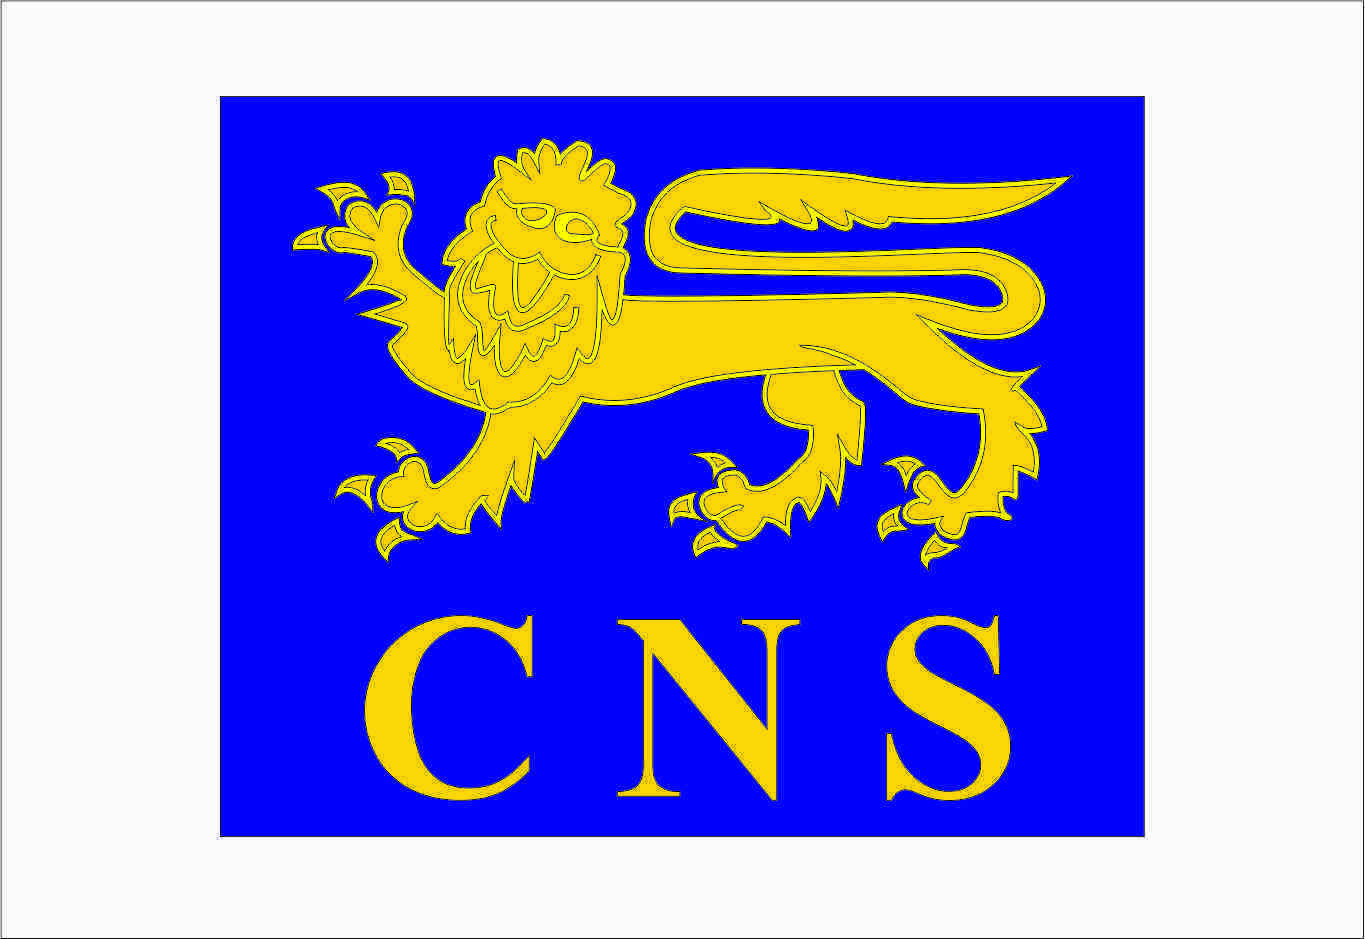 Cns - City Of Norwich School